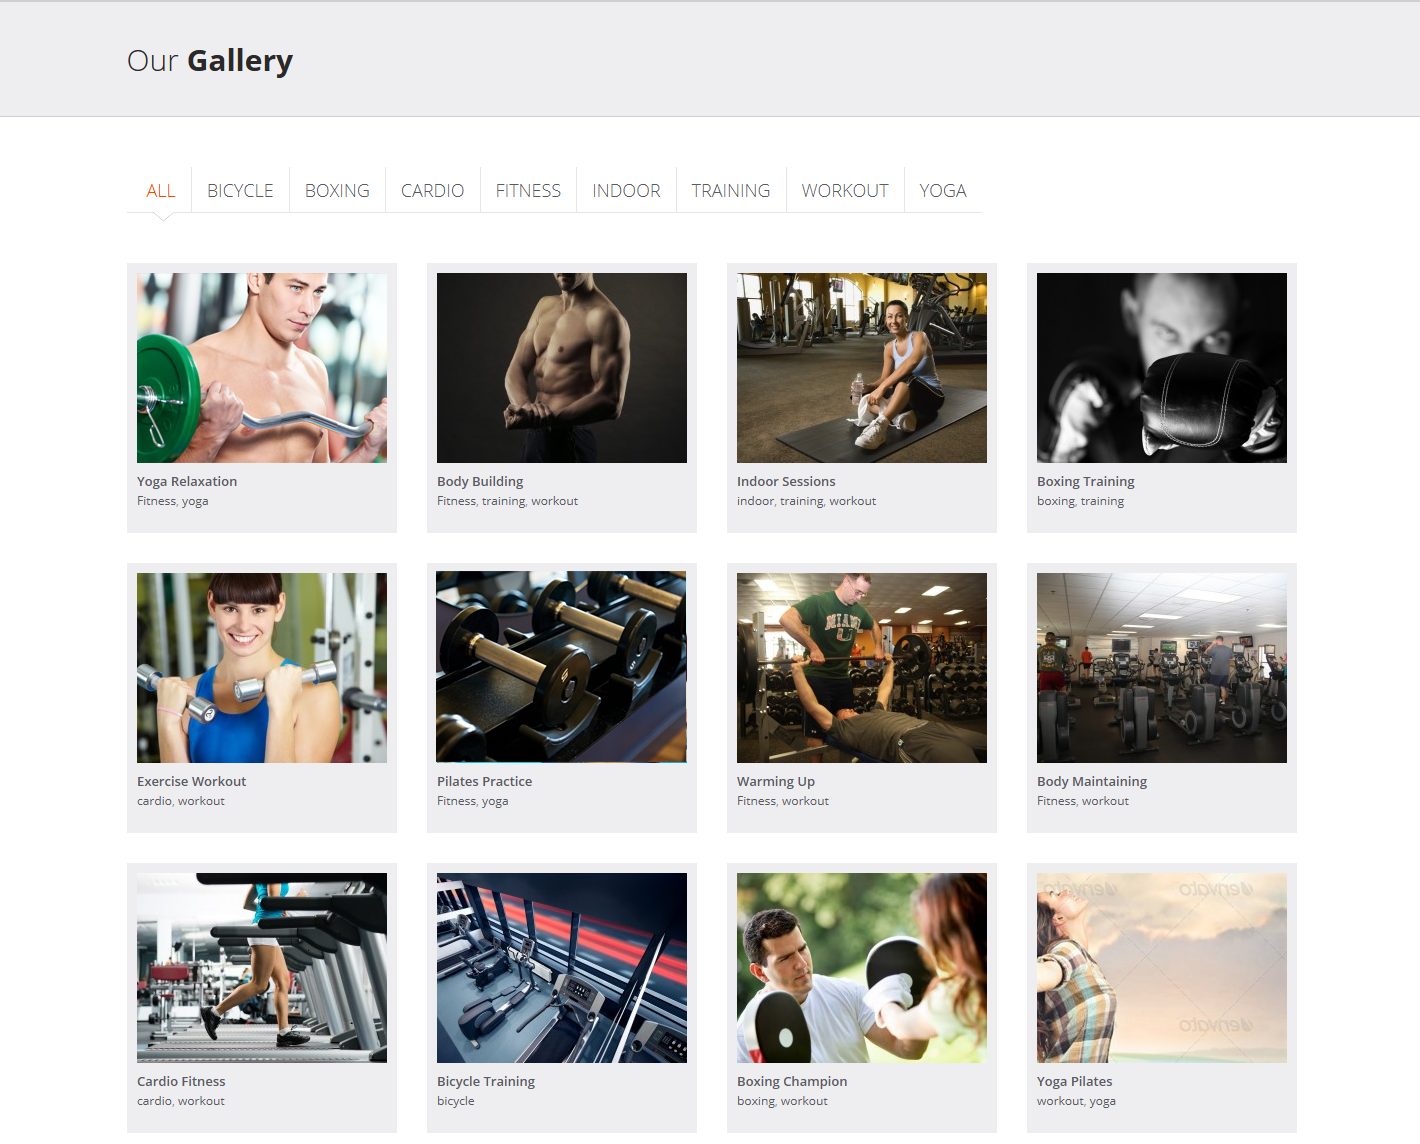 D-Fitness-Our Gallery